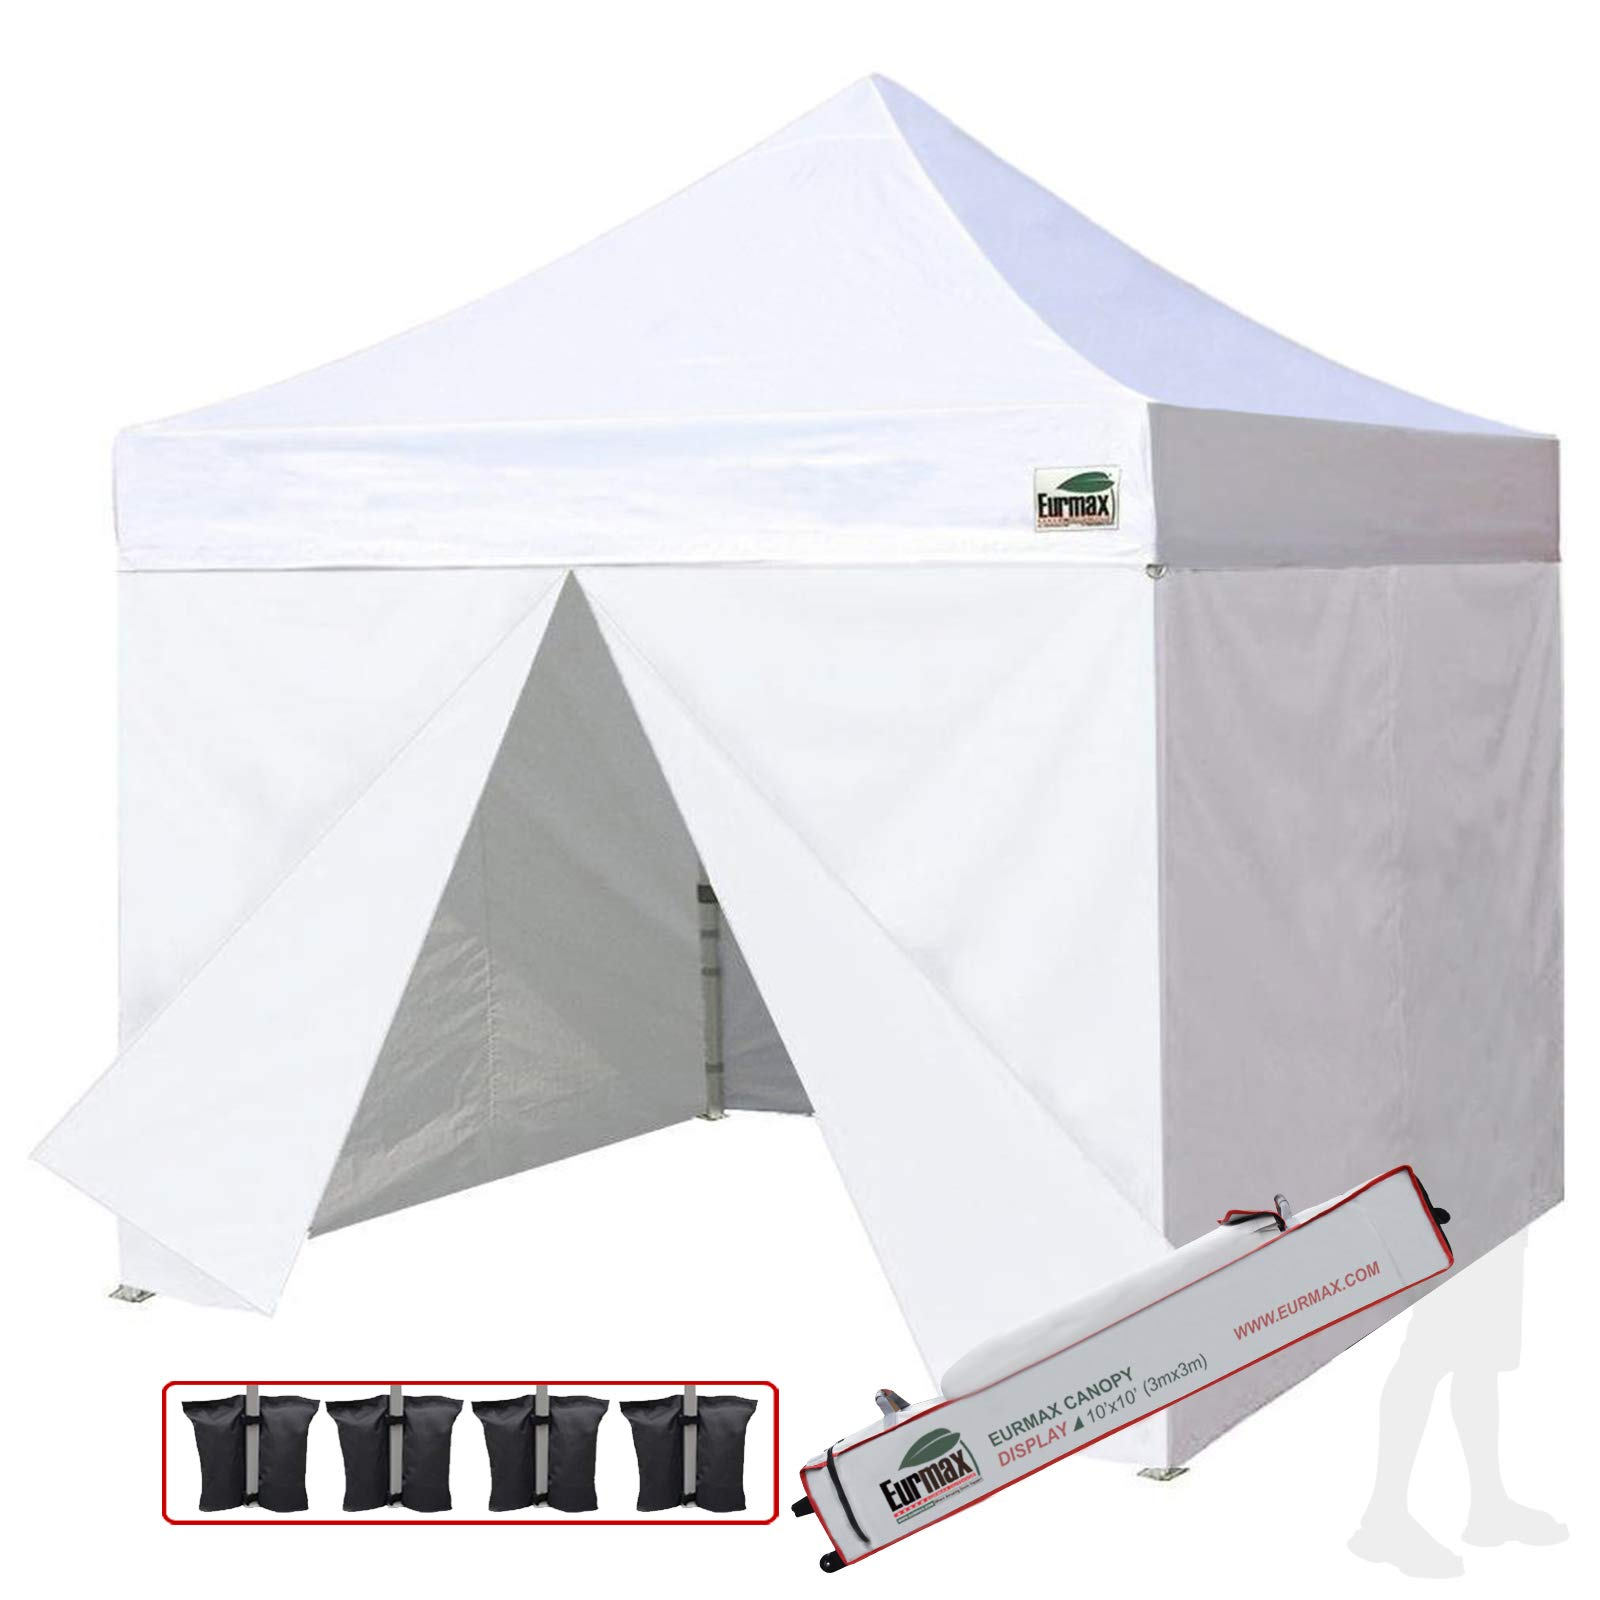 Eurmax 10x10 Ez Pop up Canopy, Commercial Party Canopies, Outdoor Shelter with 4 Zippered Sidewalls and Roller bag,Bonus 4 sandbags(White)